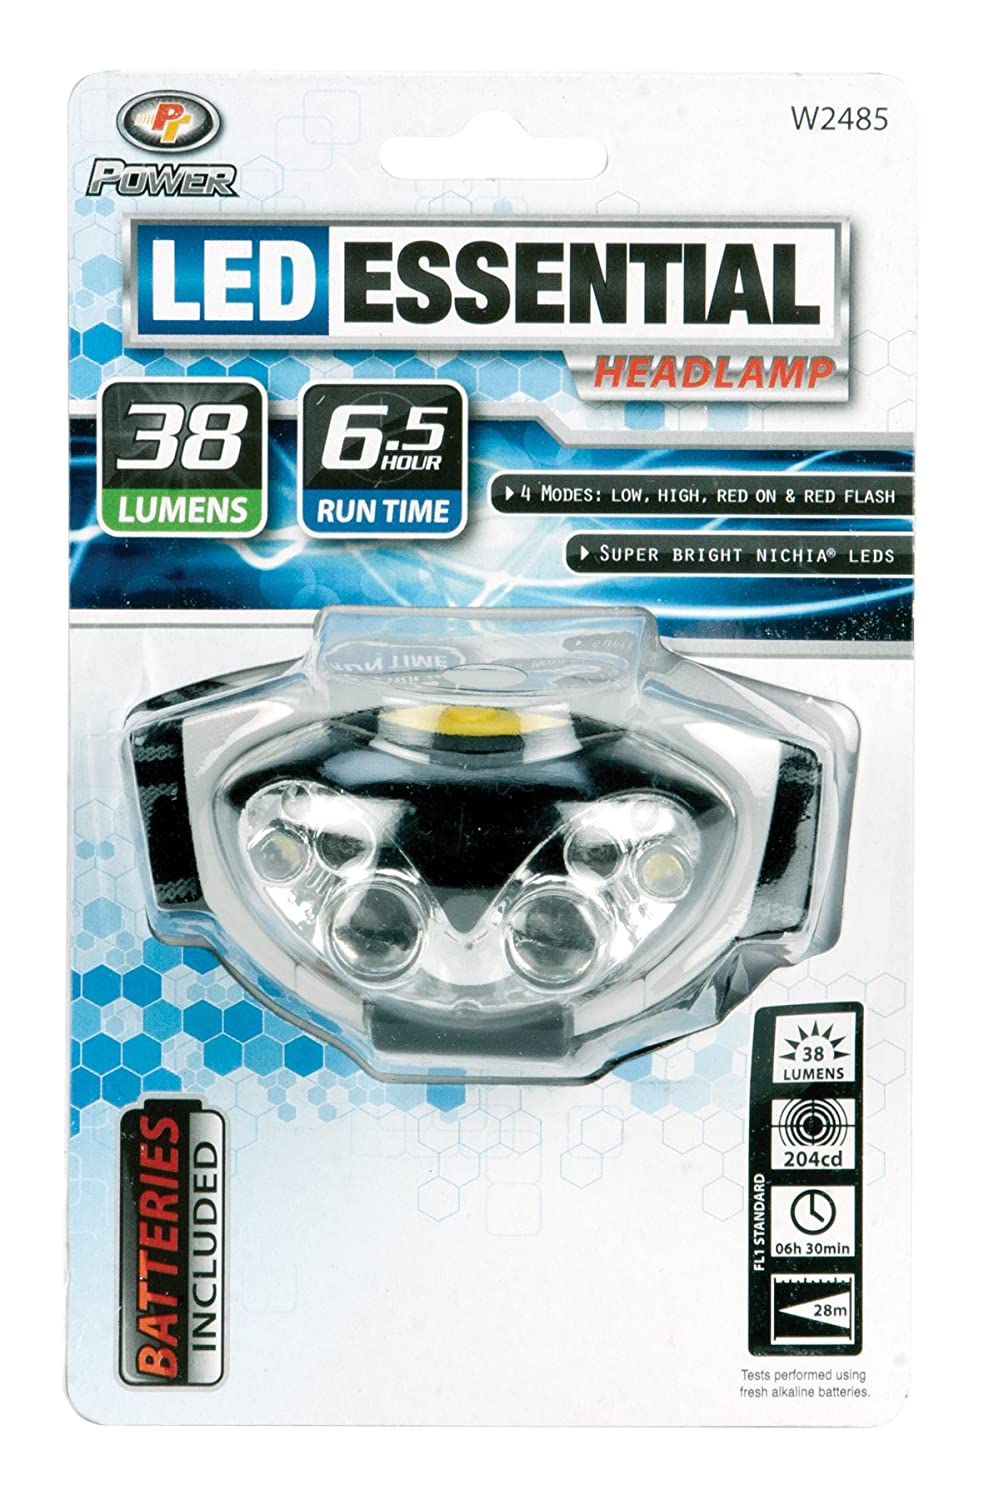 Performance Tool W2374 180 Lumen Super Bright 4 Led Red Exciting Scout Crafts 1 Or 2 Headlamp Sold As Automotive